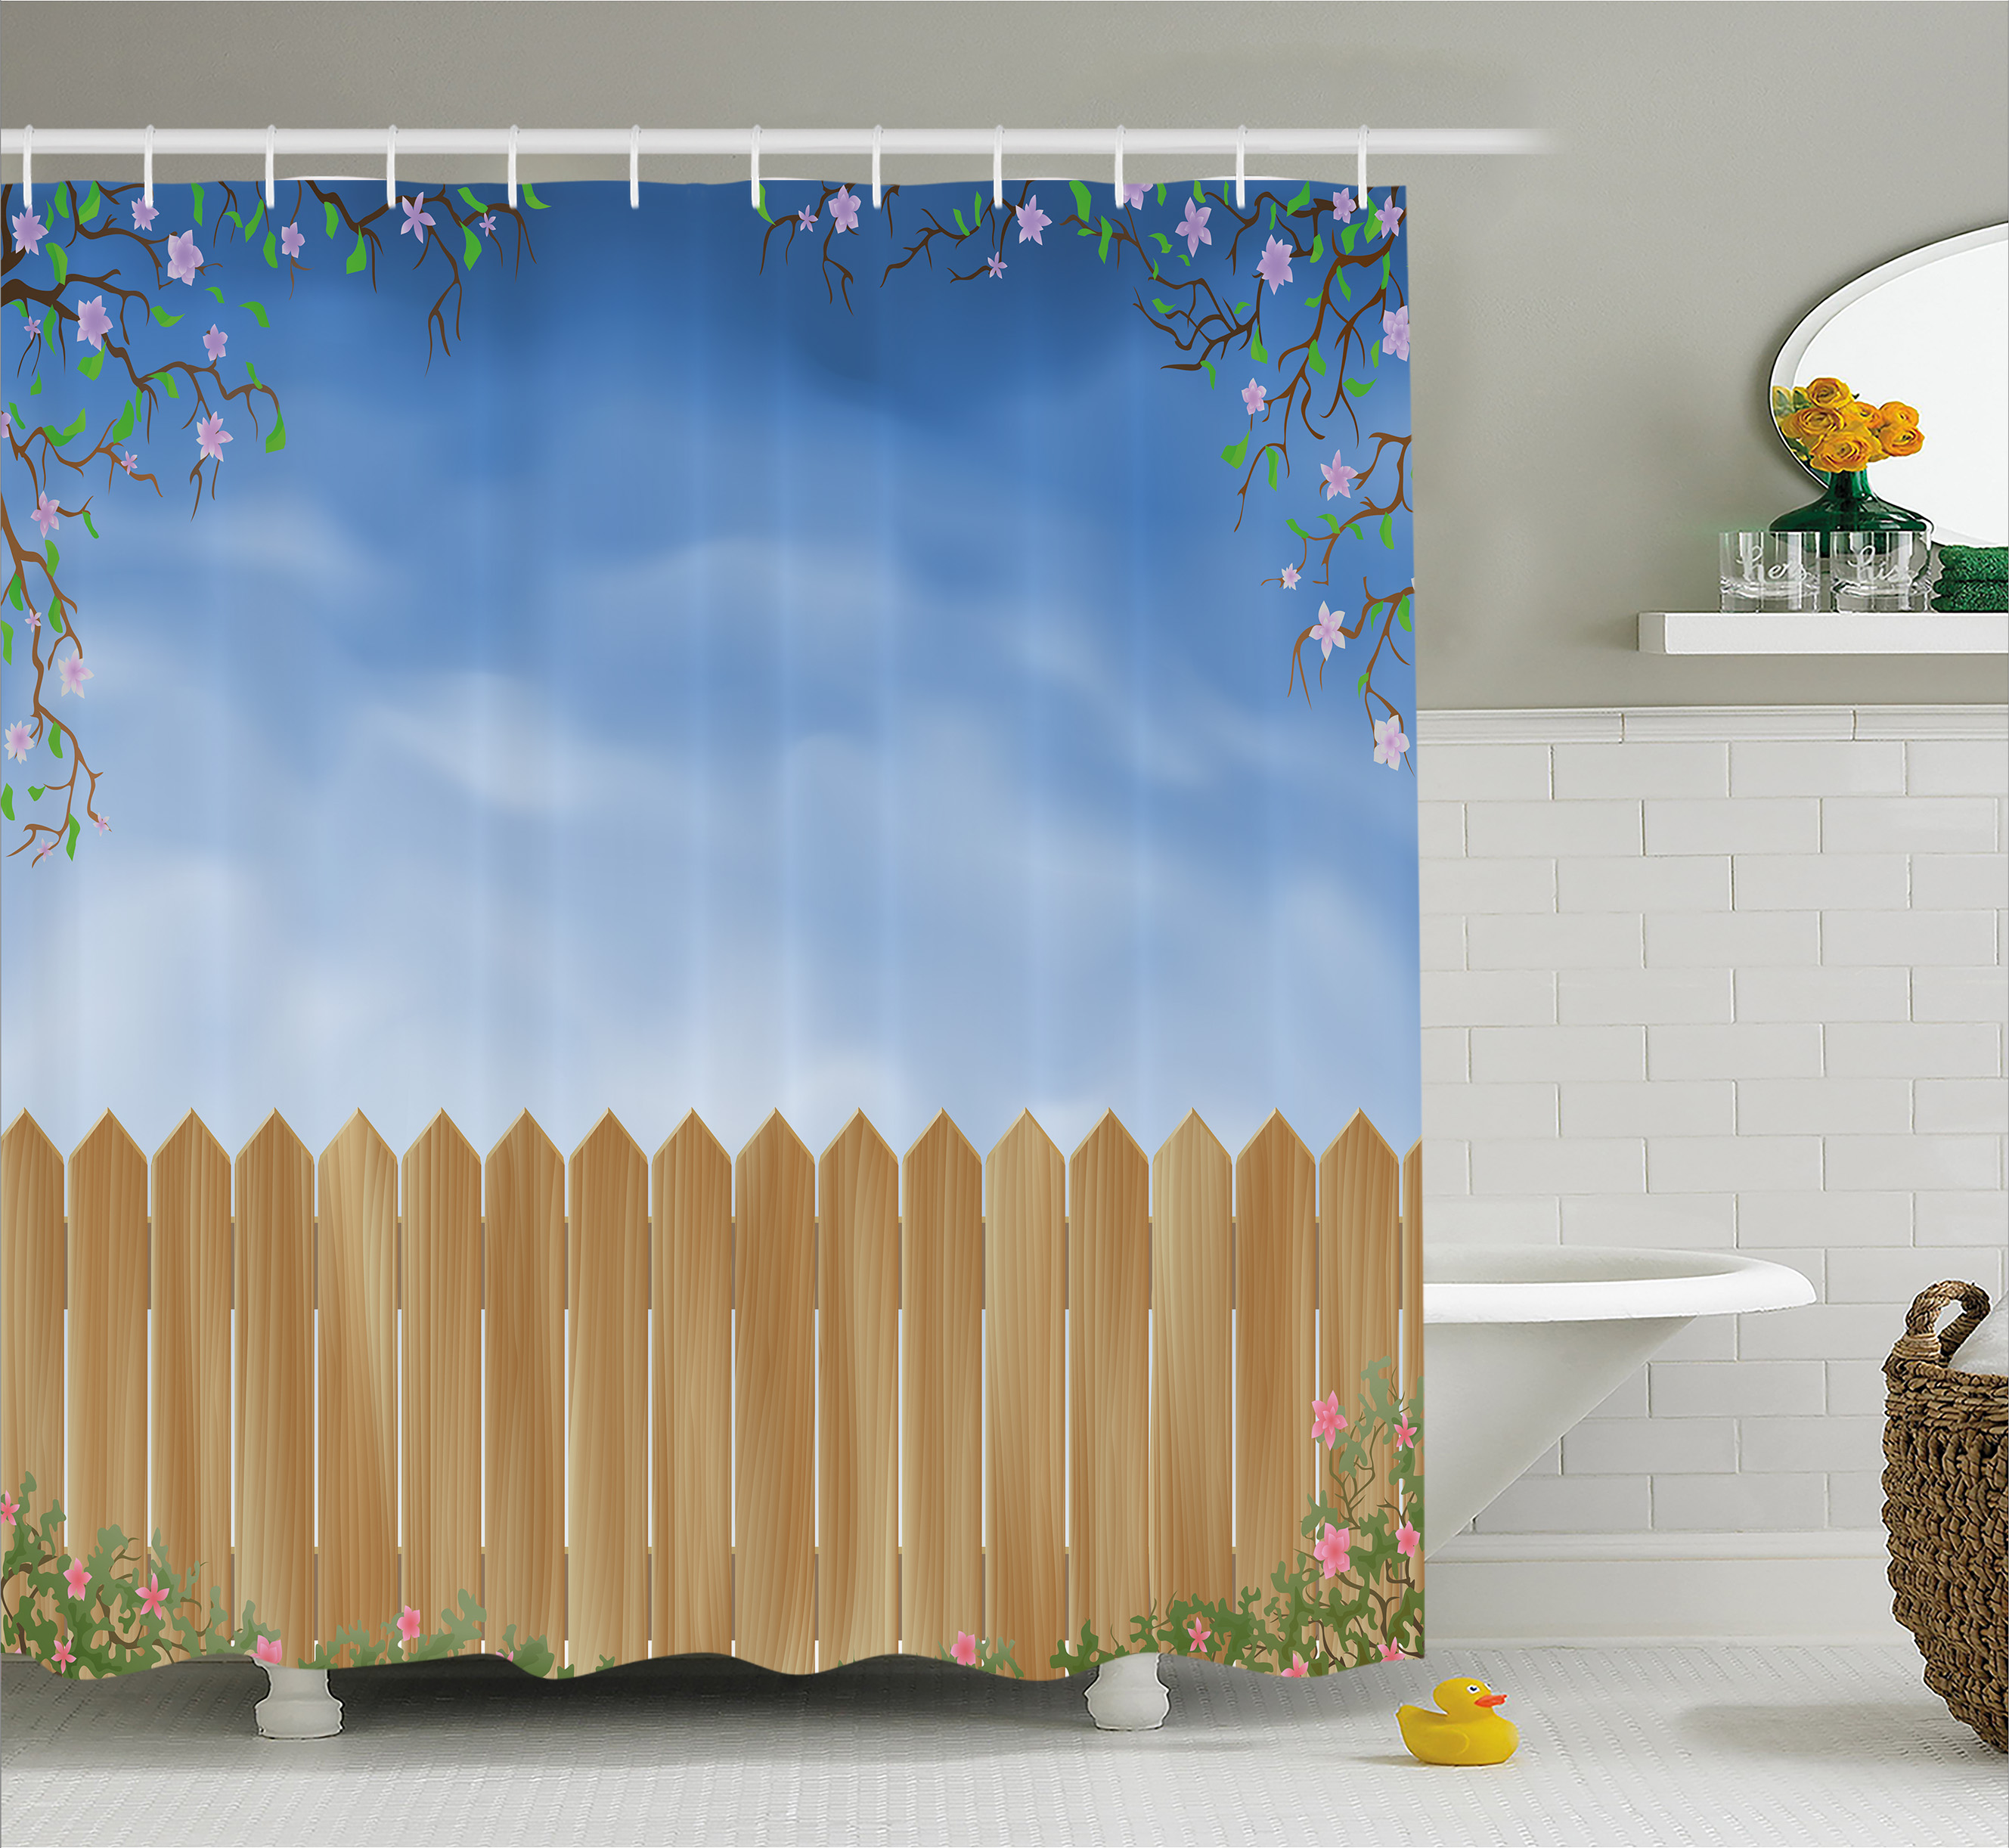 Farm House Decor Shower Curtain, Wooden Garden Plank with Swirled Spring Season Bloom Up Tranquil Landscape, Fabric Bathroom Set with Hooks, 69W X 84L Inches Extra Long, Blue Brown, by Ambesonne